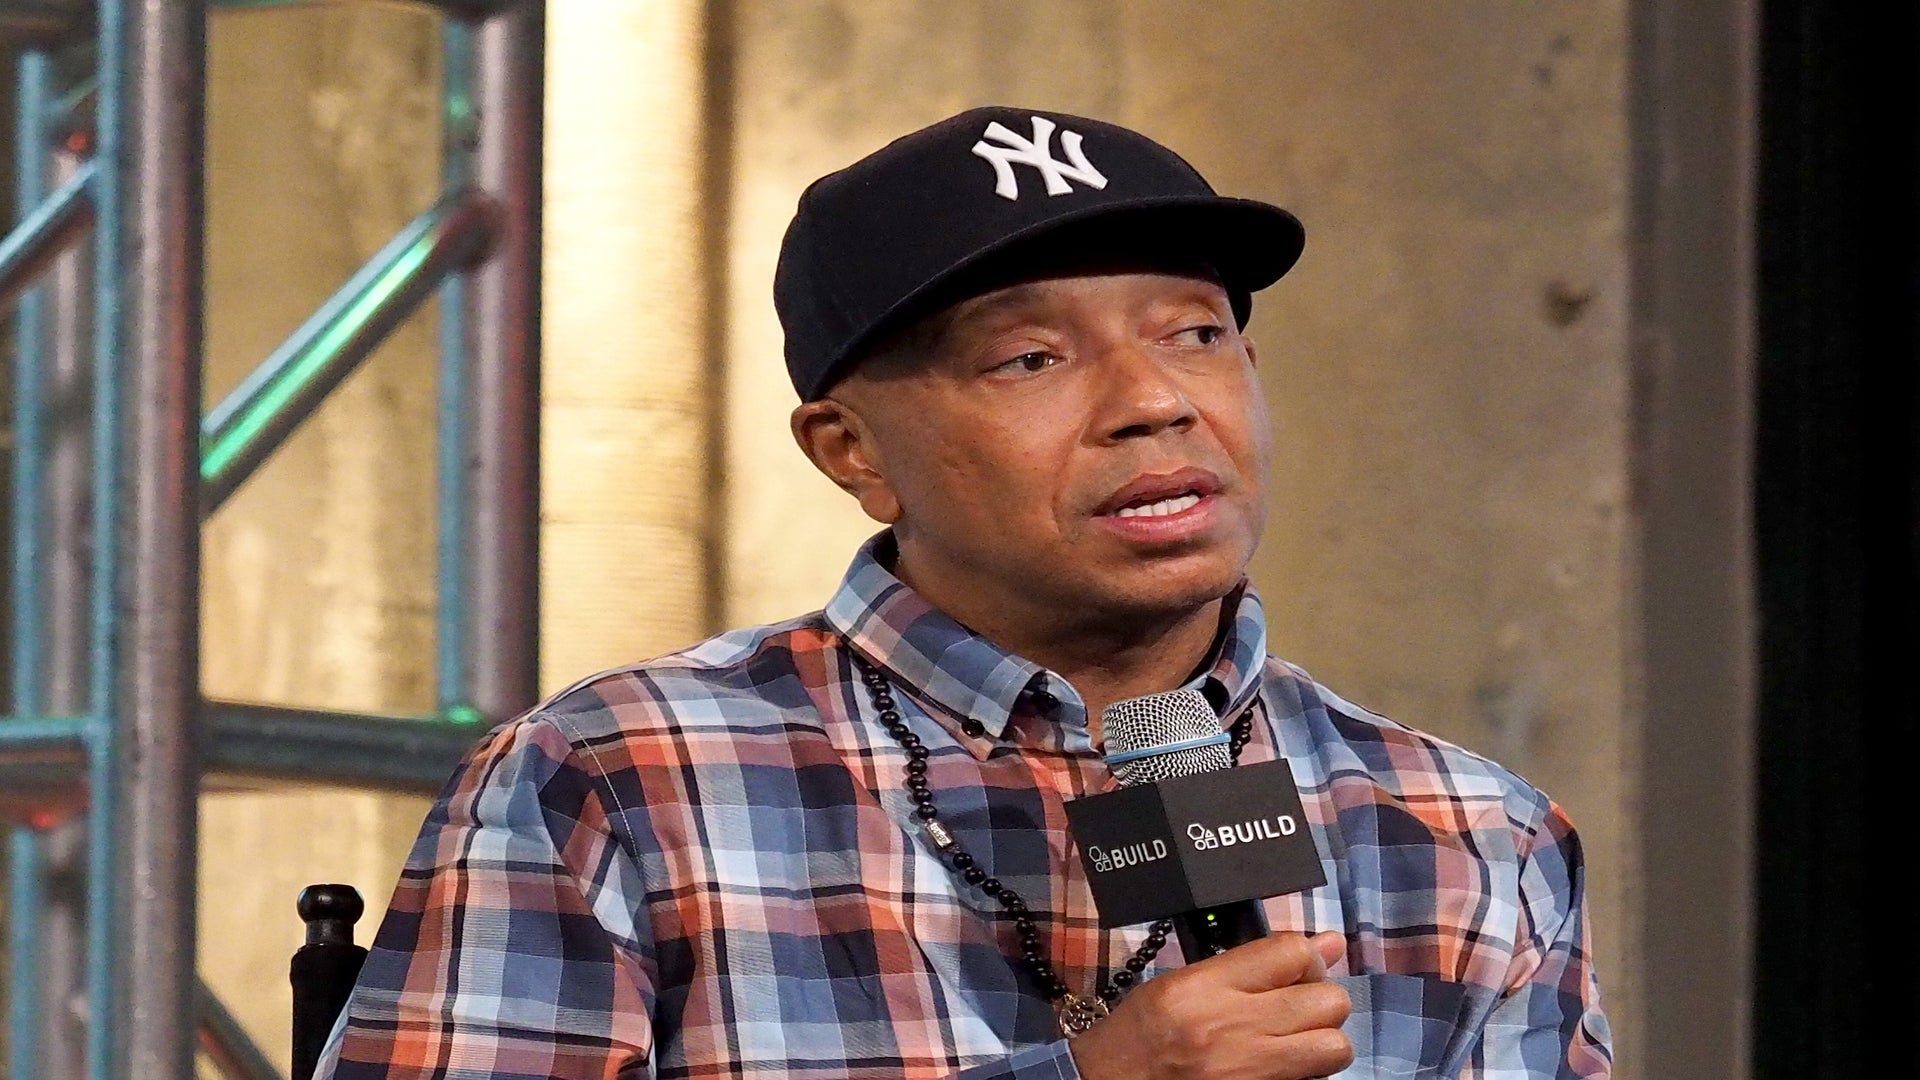 Russell Simmons On Trump's Anti-Semitic Remarks: 'He Said Some Things That Were Hurtful'